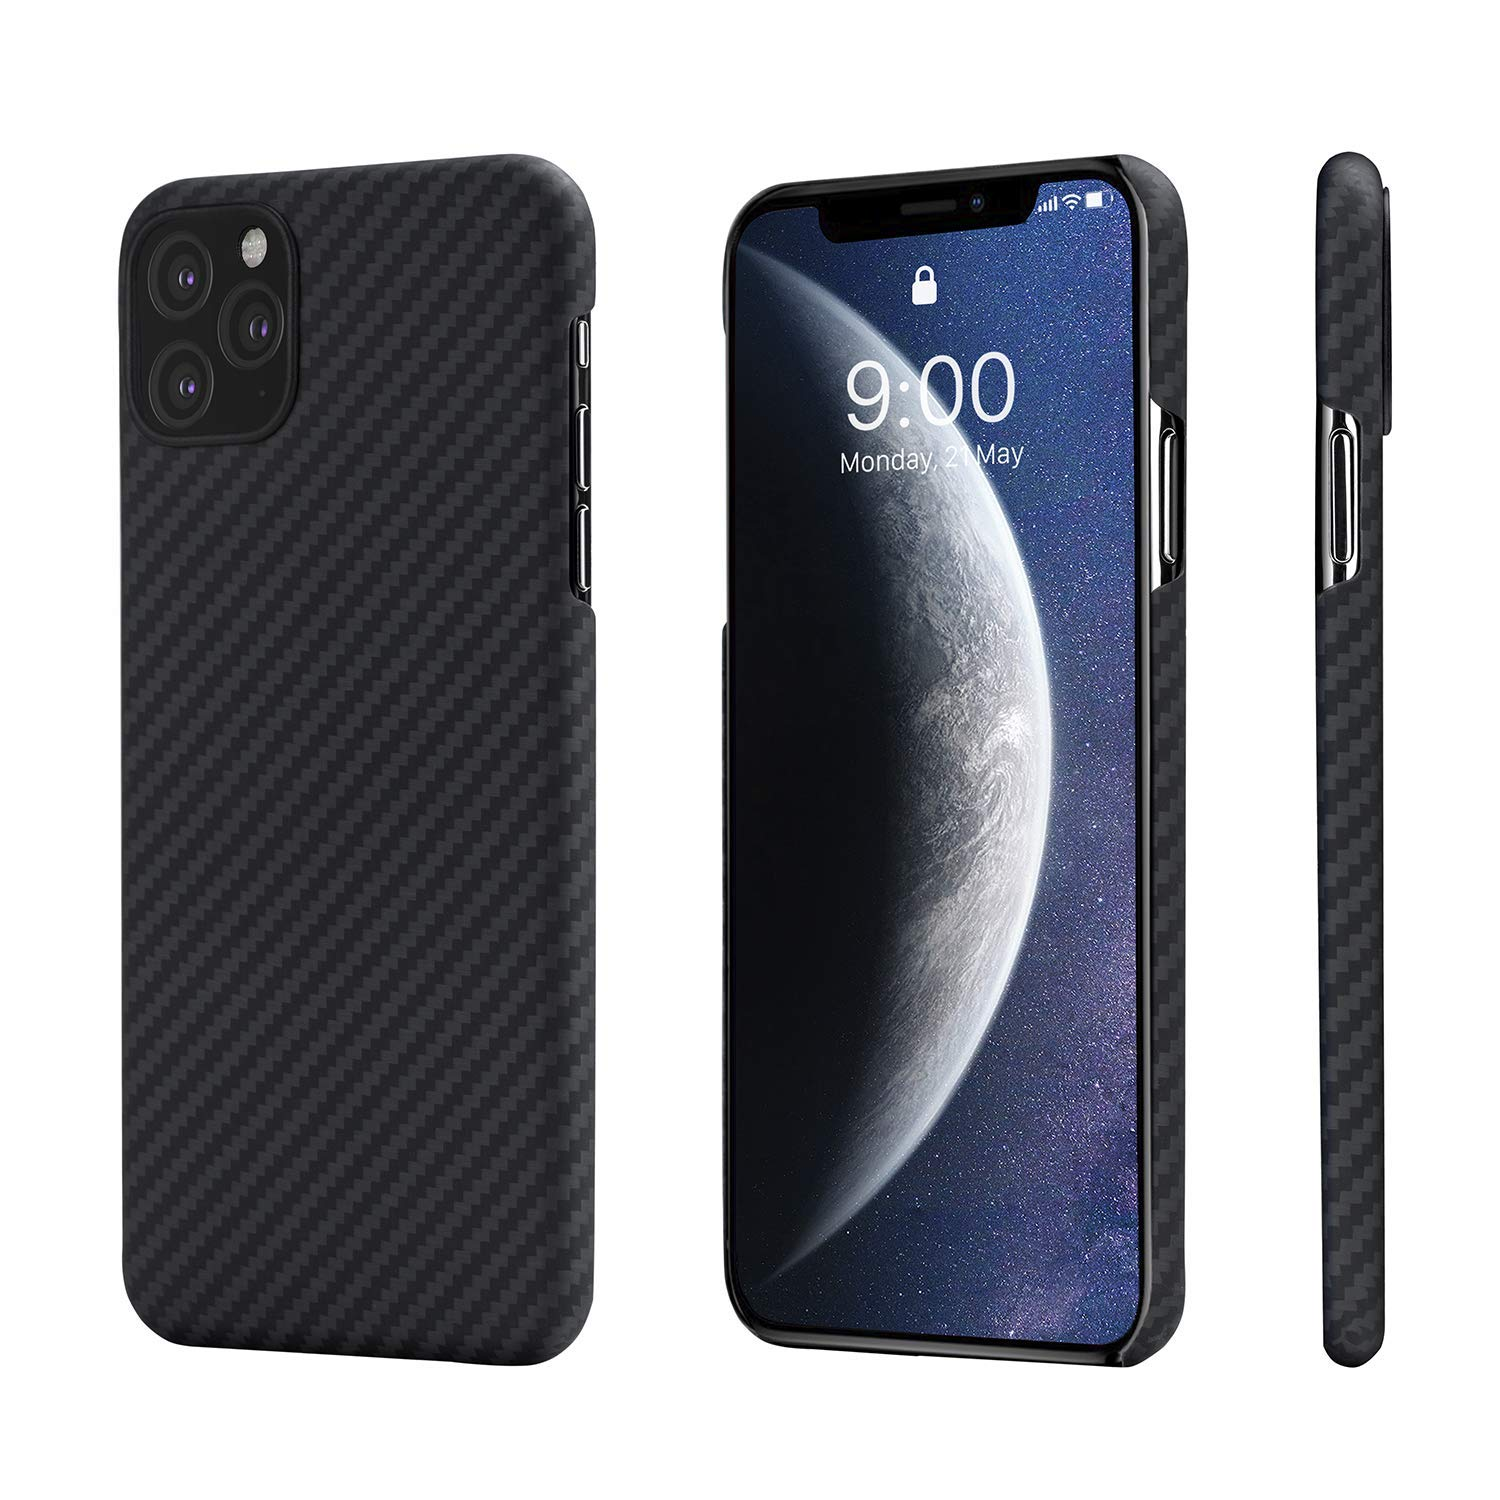 PITAKA Slim Case Compatible with iPhone 11 Pro Max 6.5'', MagCase Aramid Fiber [Real Body Armor Material] Phone Case, Minimalist Strongest Durable Snugly Fit Snap-on Case - Black/Grey(Twill) by PITAKA